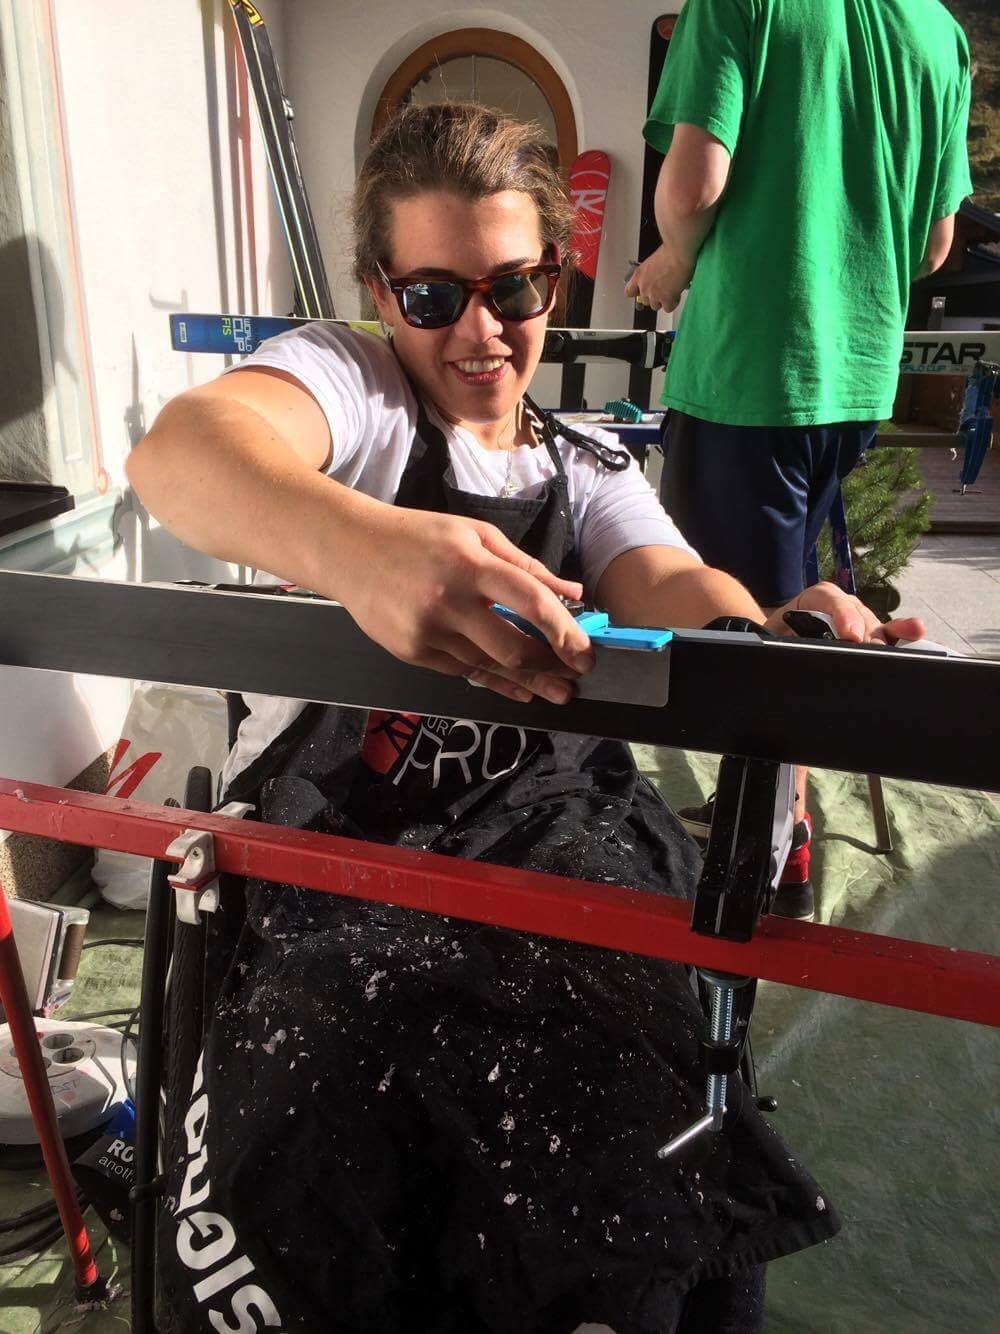 Tuning skis in the sunshine